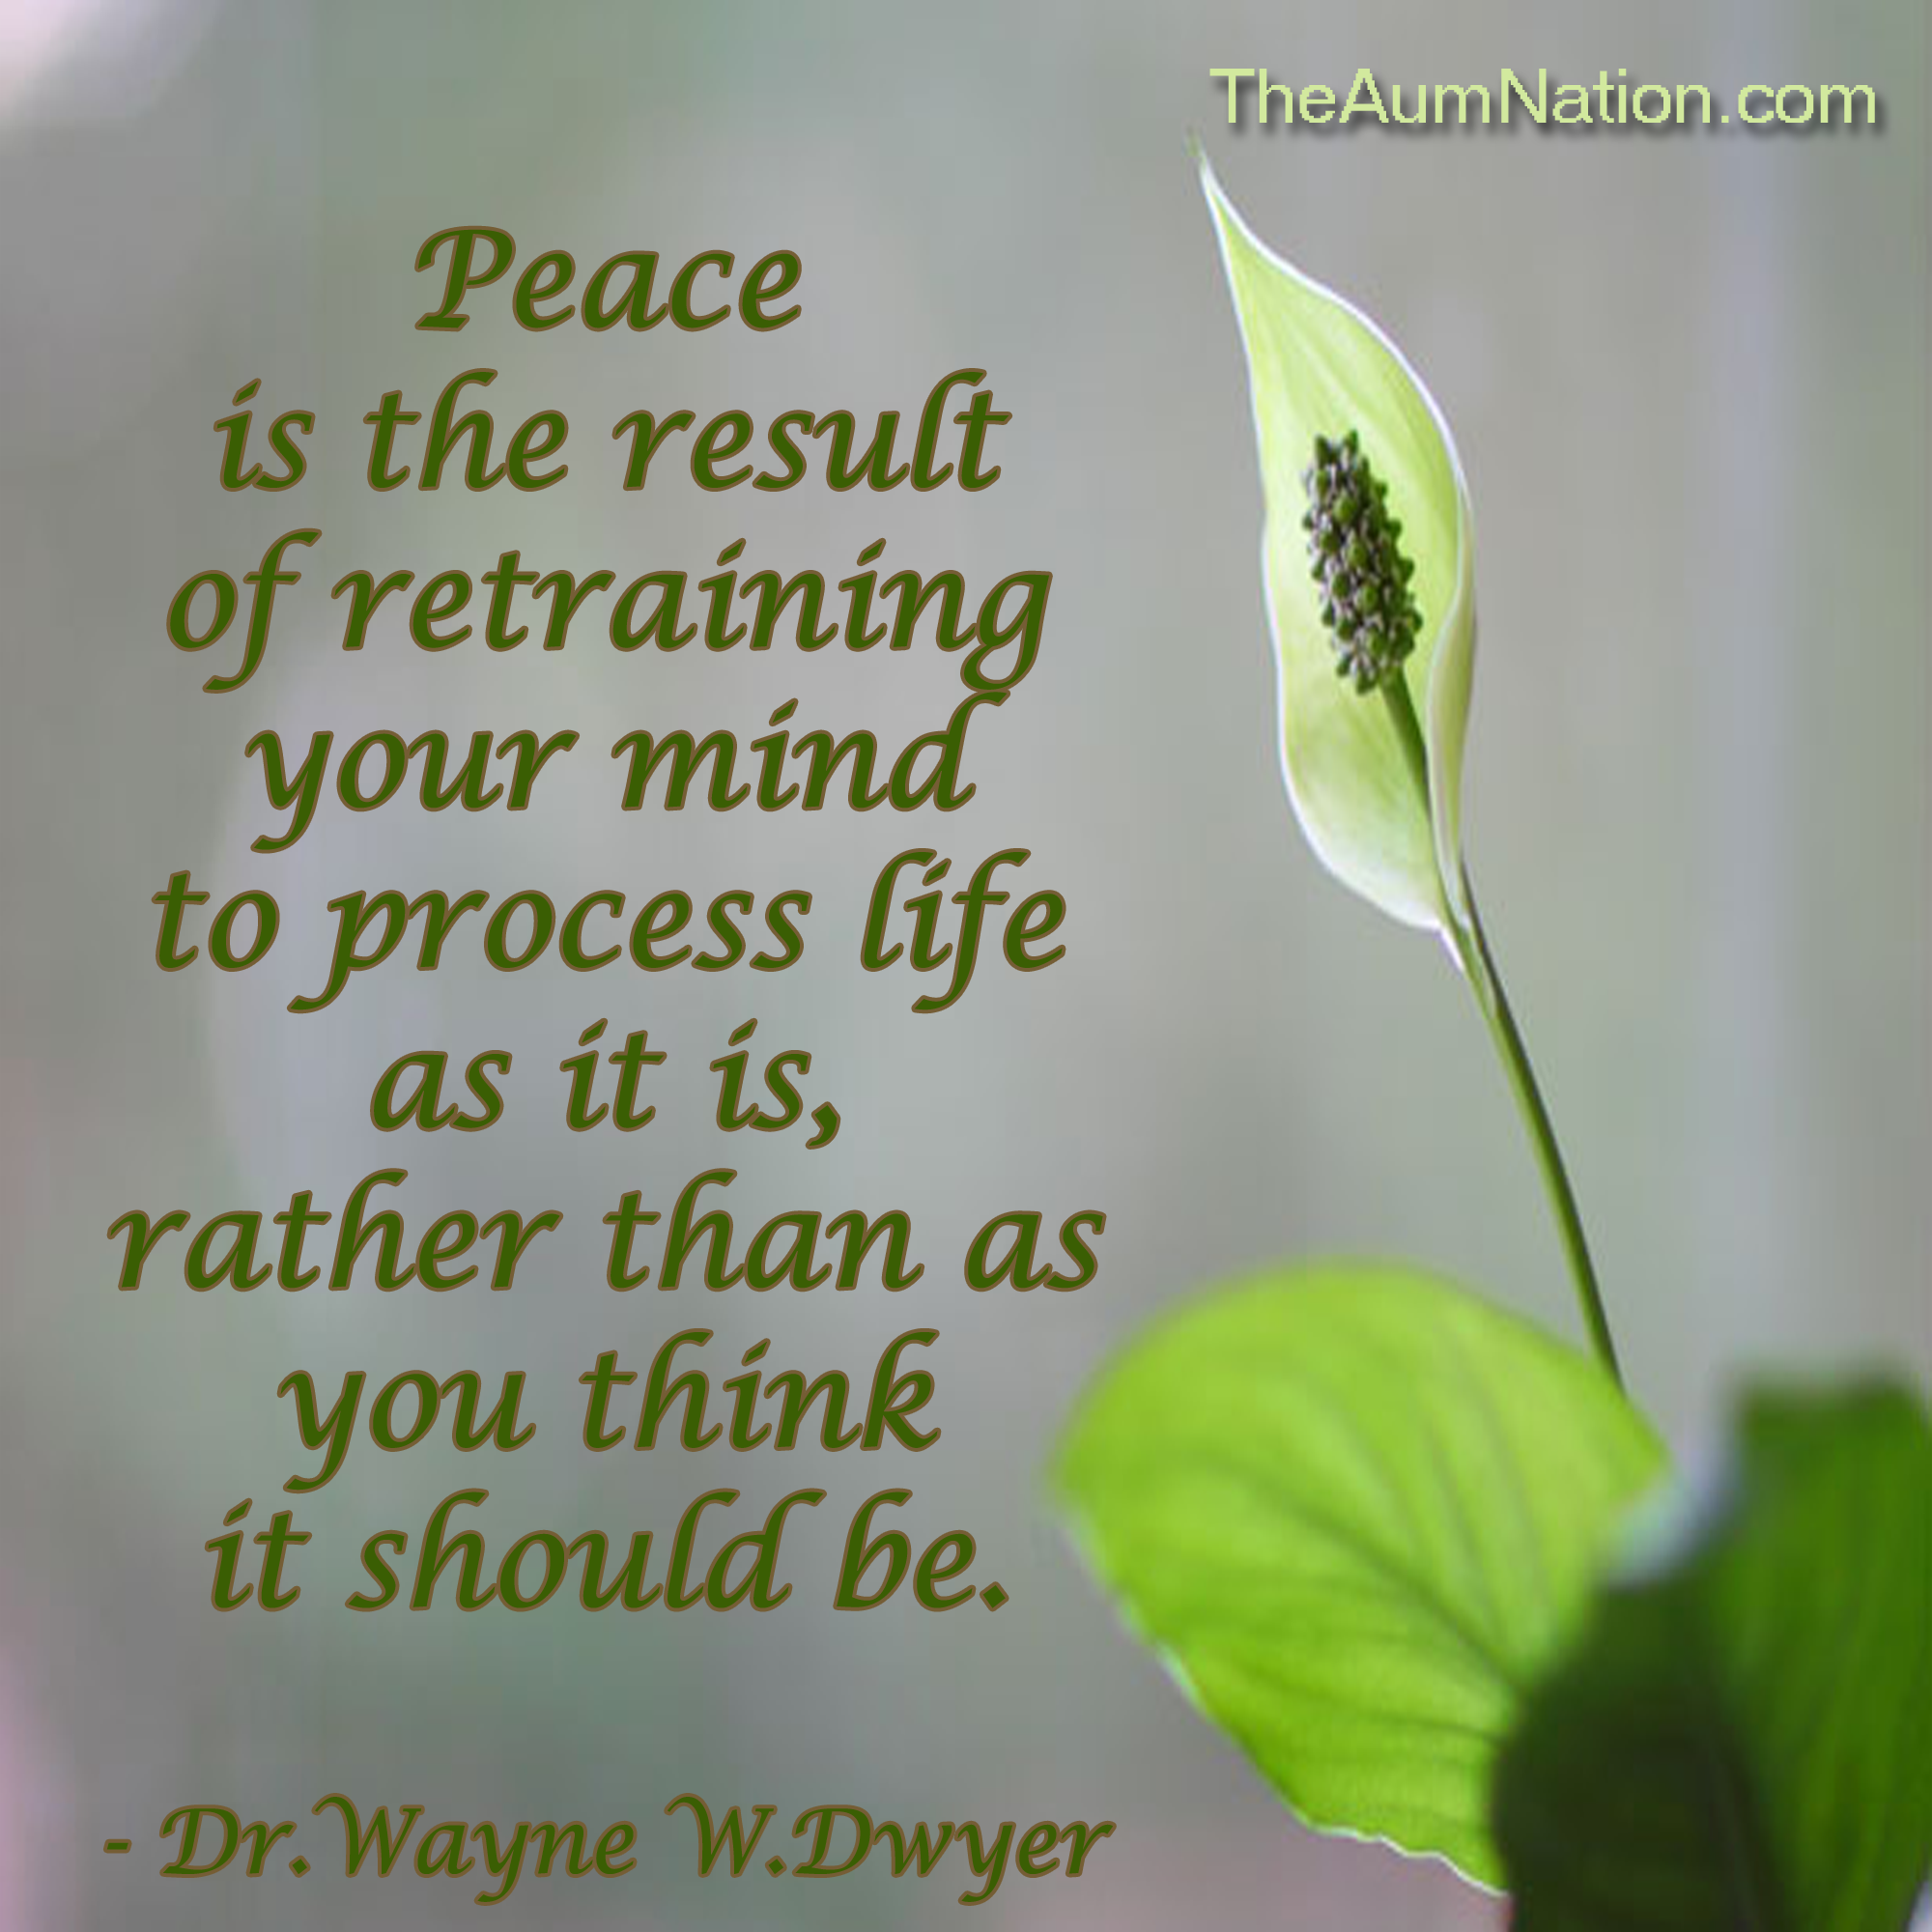 """""""Peace is the result of retraining your mind to process life as it is, rather than as you think it should be."""" - Dr. Wayne W. Dwyer"""